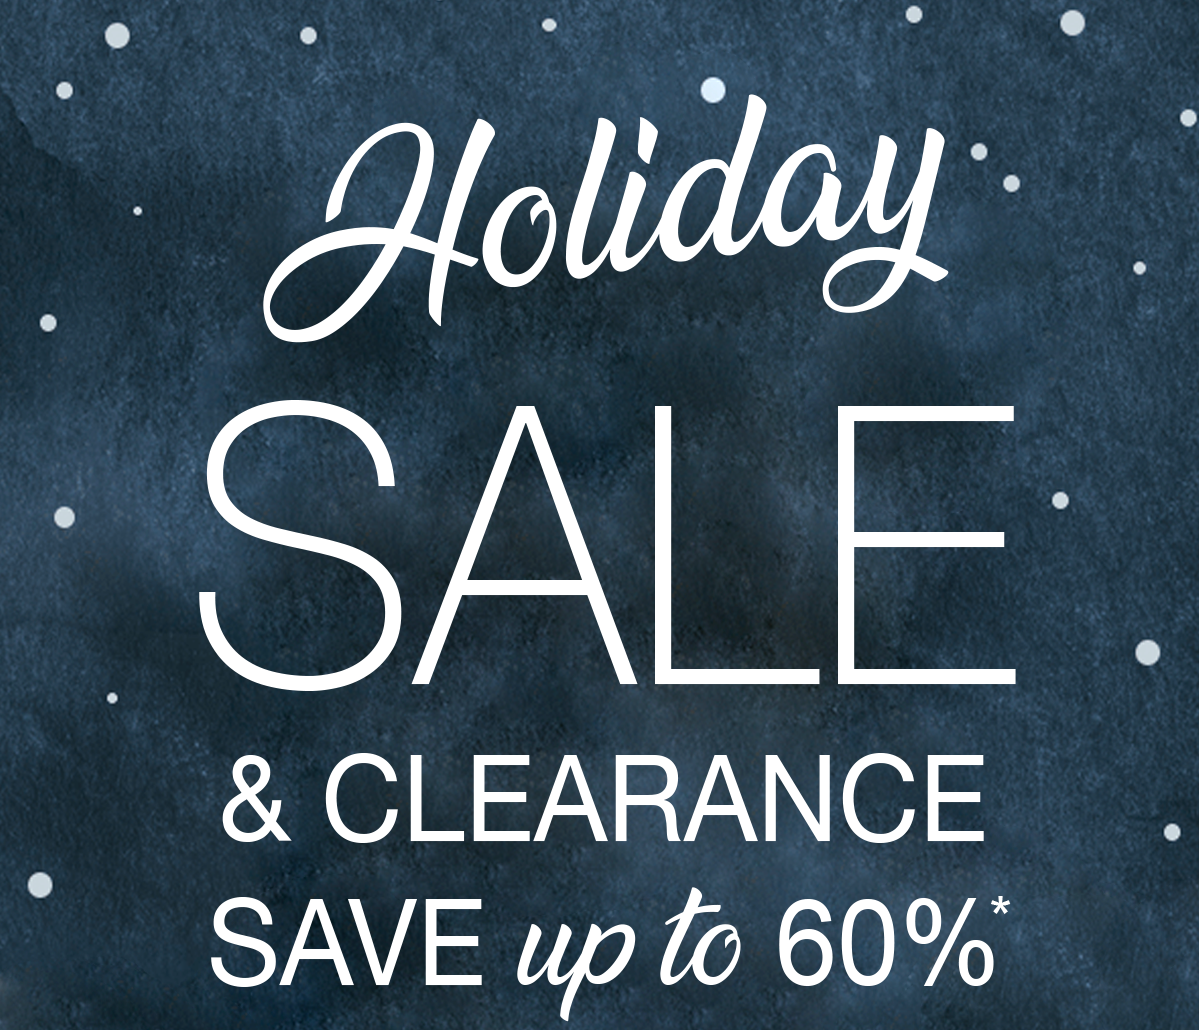 Holiday Sale & Clearance Save Up To 60%*